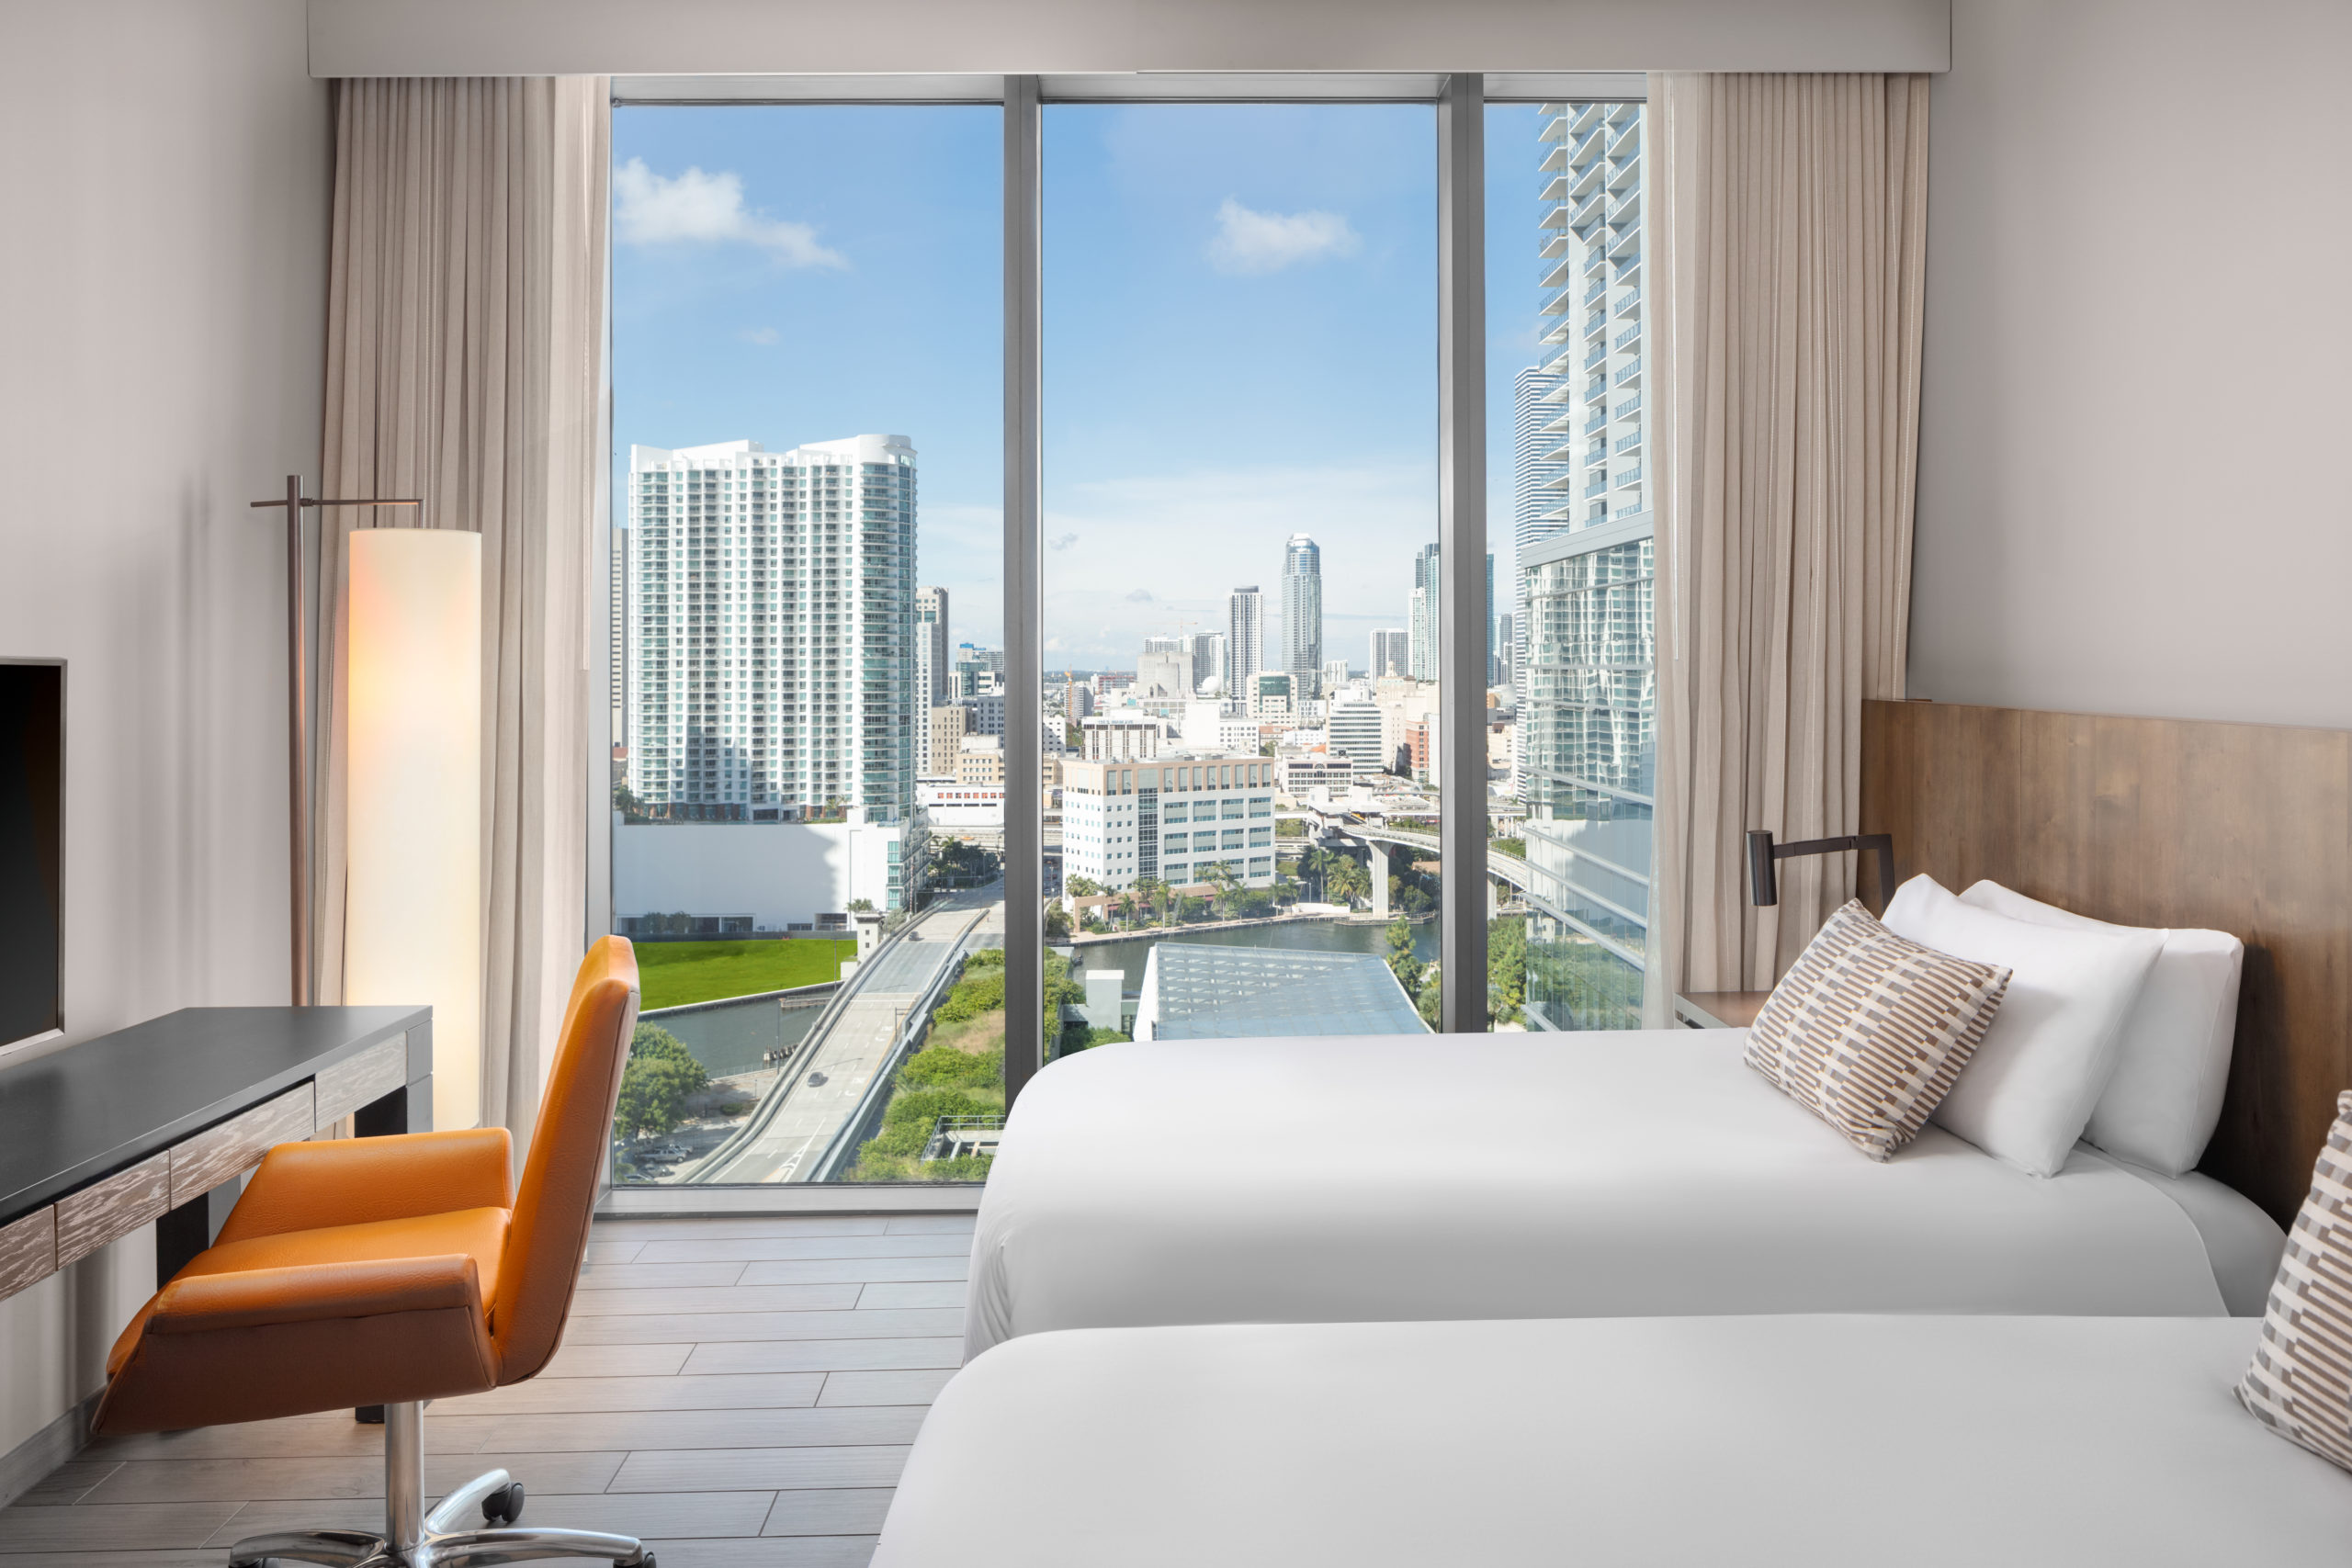 Luxury Hotel Guestroom Photography Miami Florida by Adrian Kilchherr, Approved Hilton, Hyatt Photographer